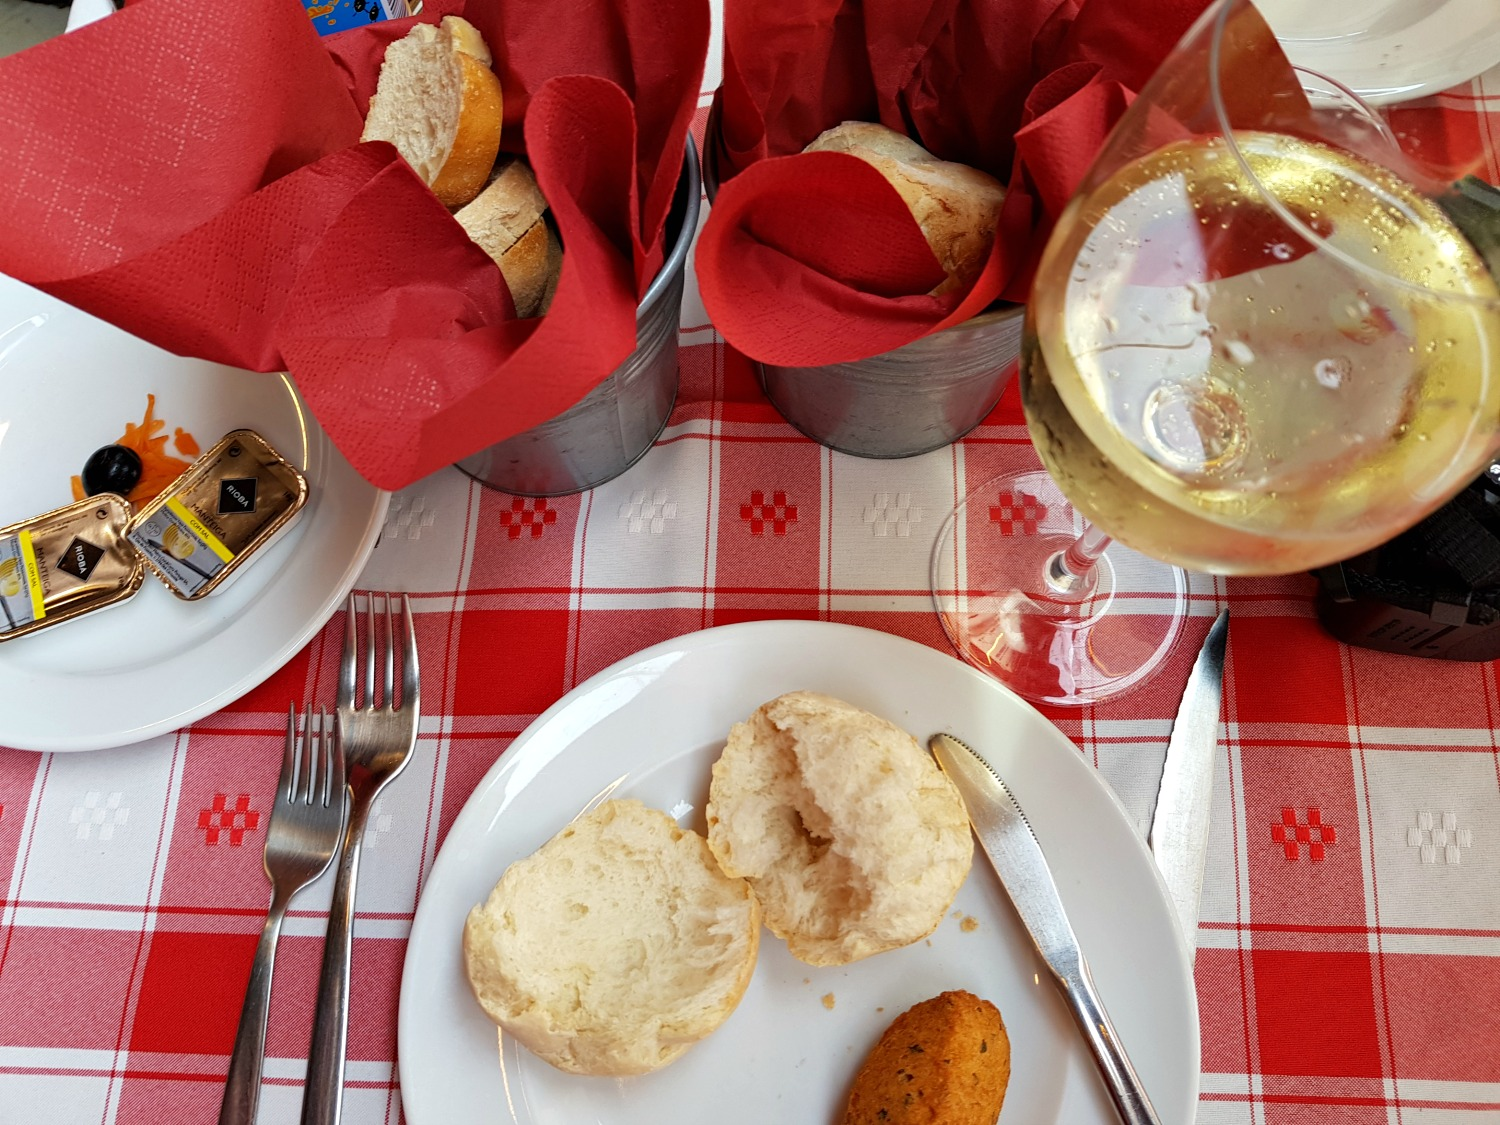 Starting a long lunch in Porto with bread and other snacks as part of the covert - my Porto travel tips and lessons for visiting the city with kids